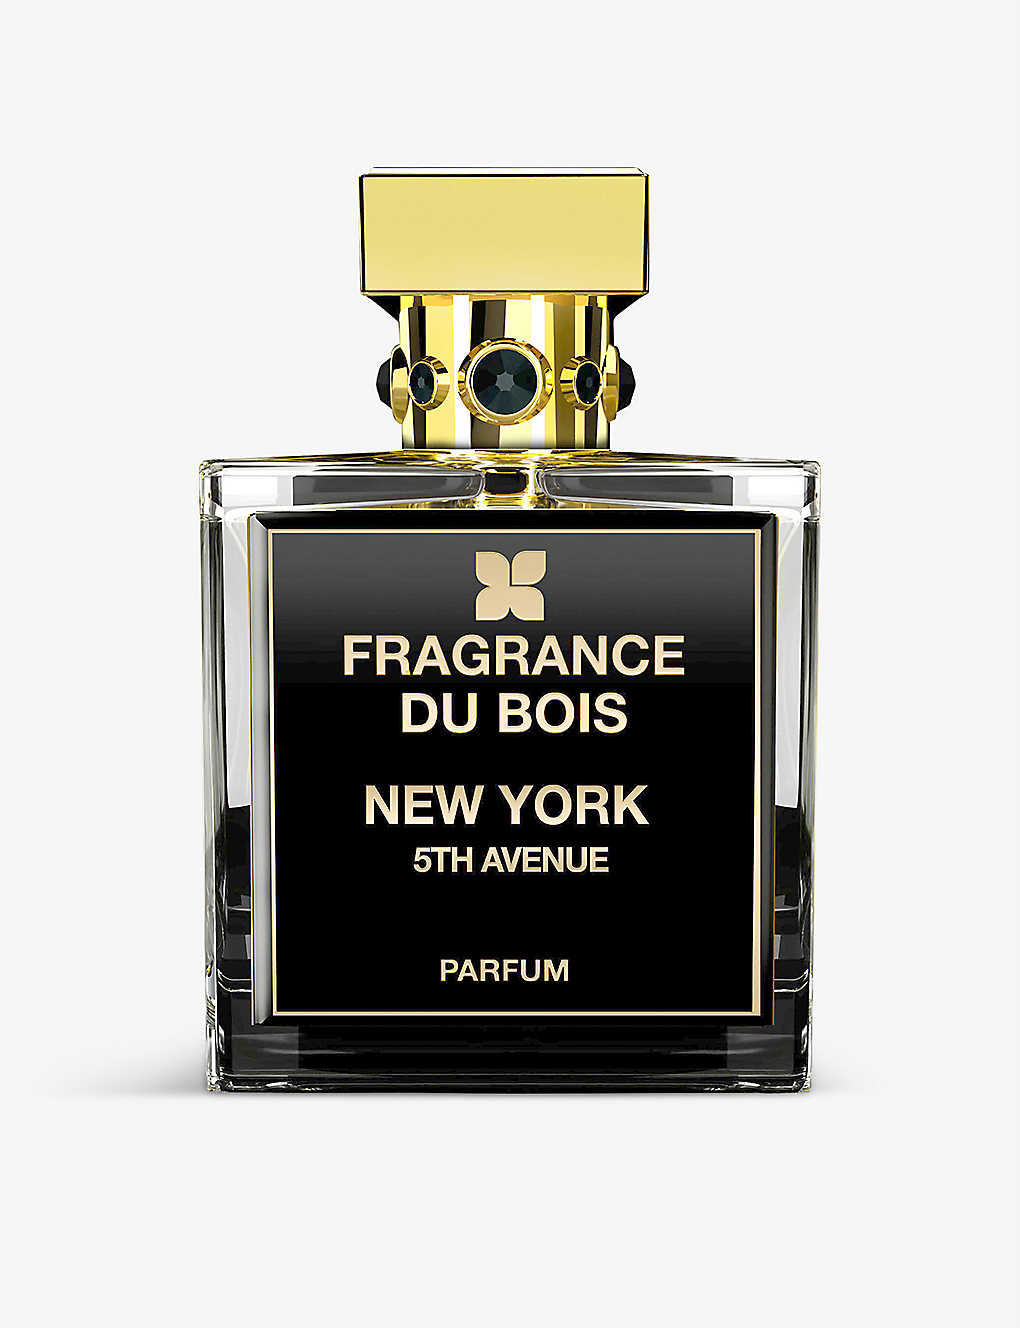 FRAGRANCE DU BOIS: New York 5th Avenue eau de parfum 100ml